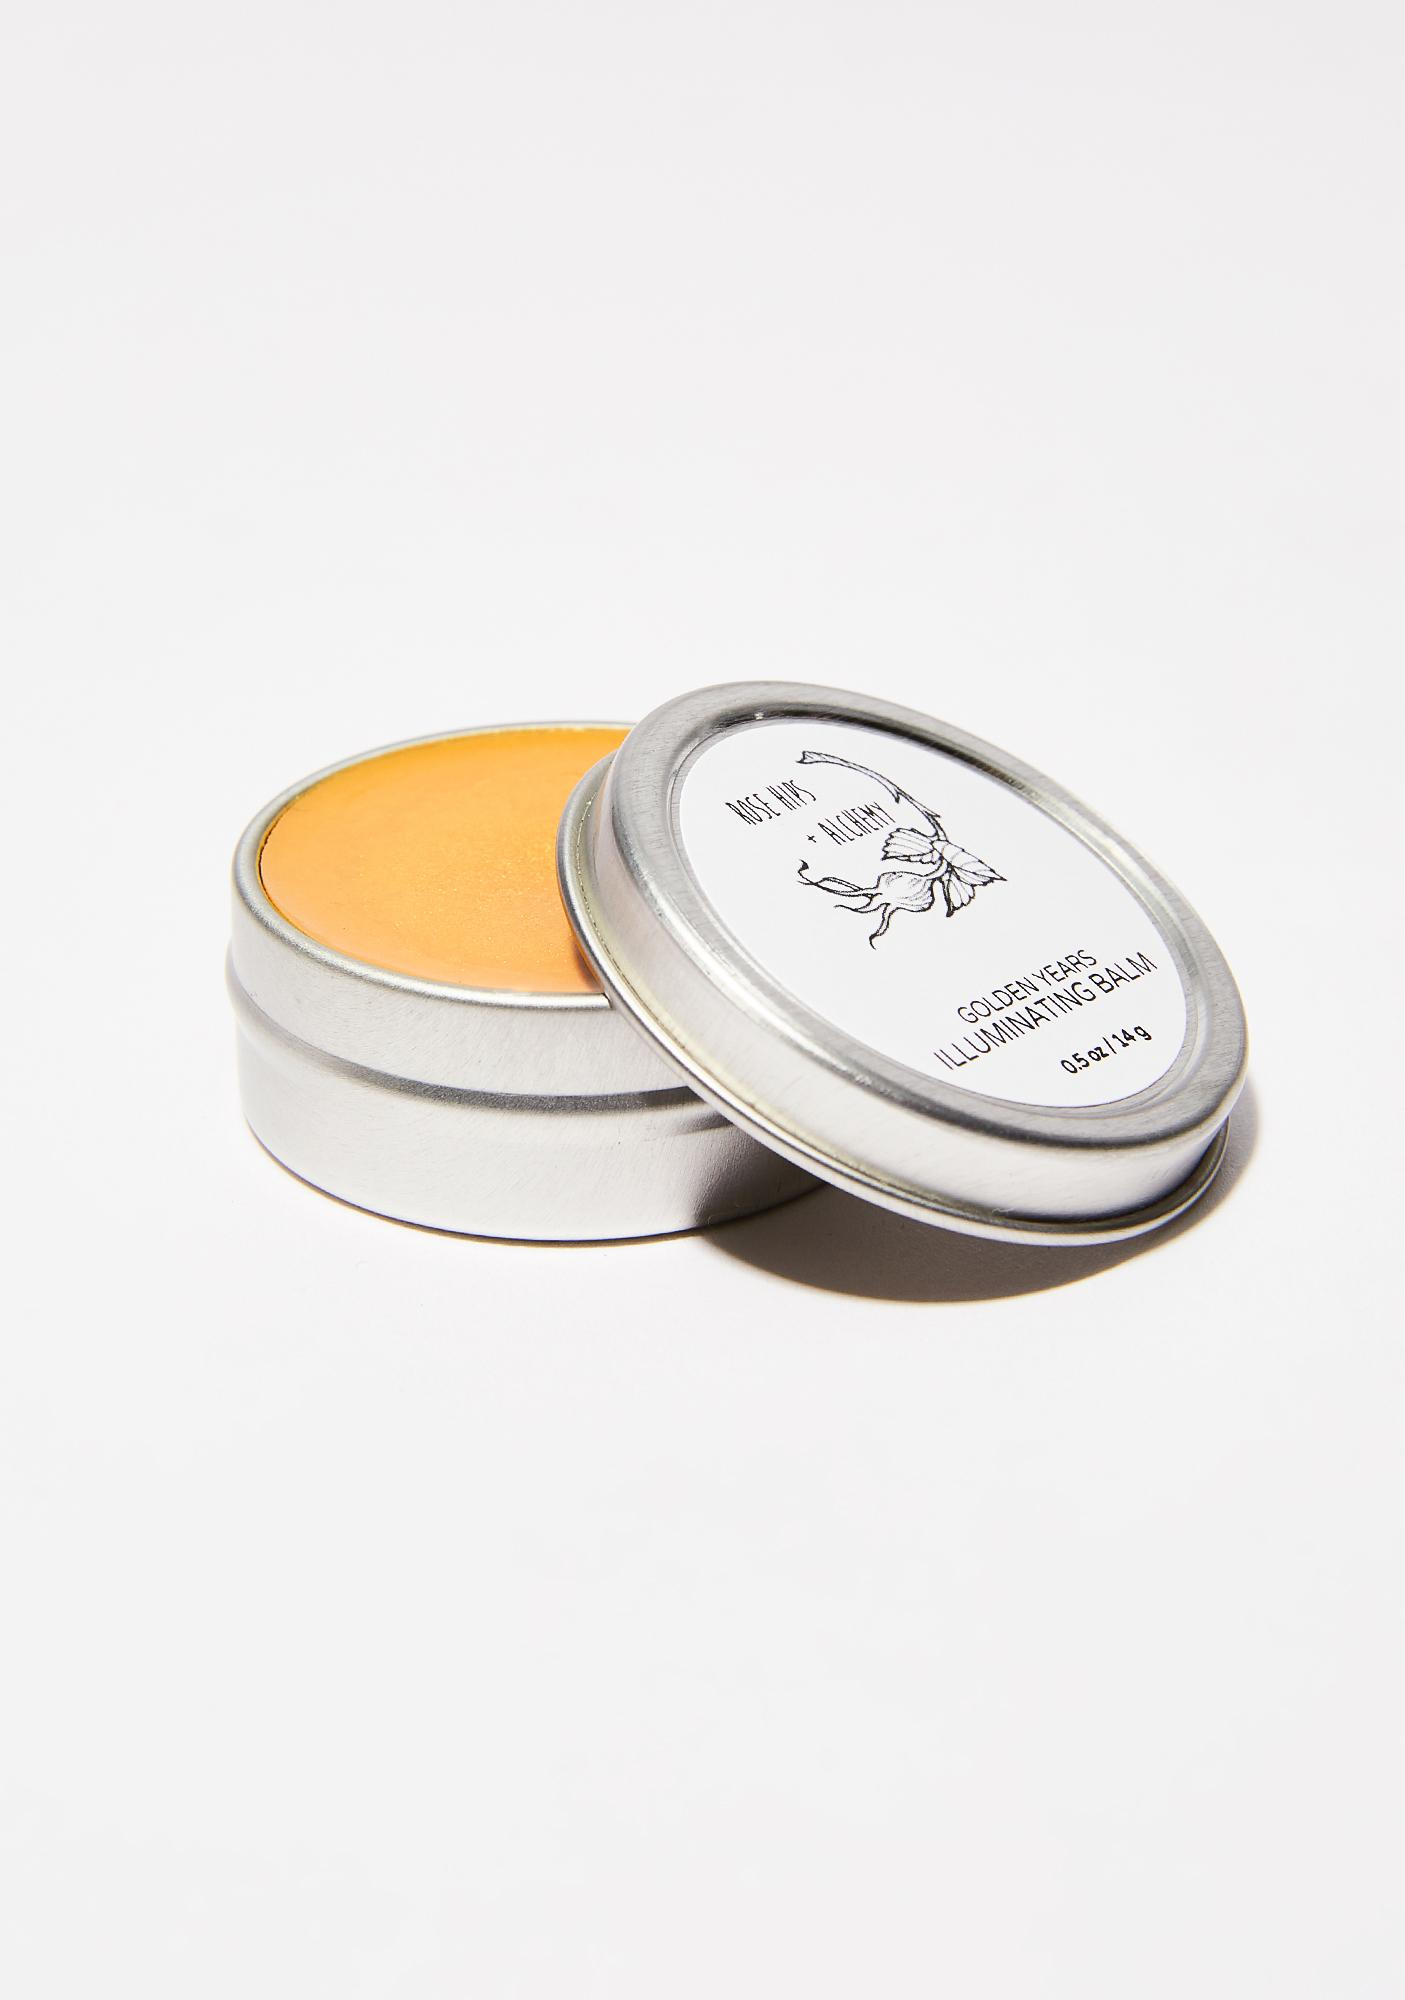 Rose Hips + Alchemy Golden Years Illuminating Balm